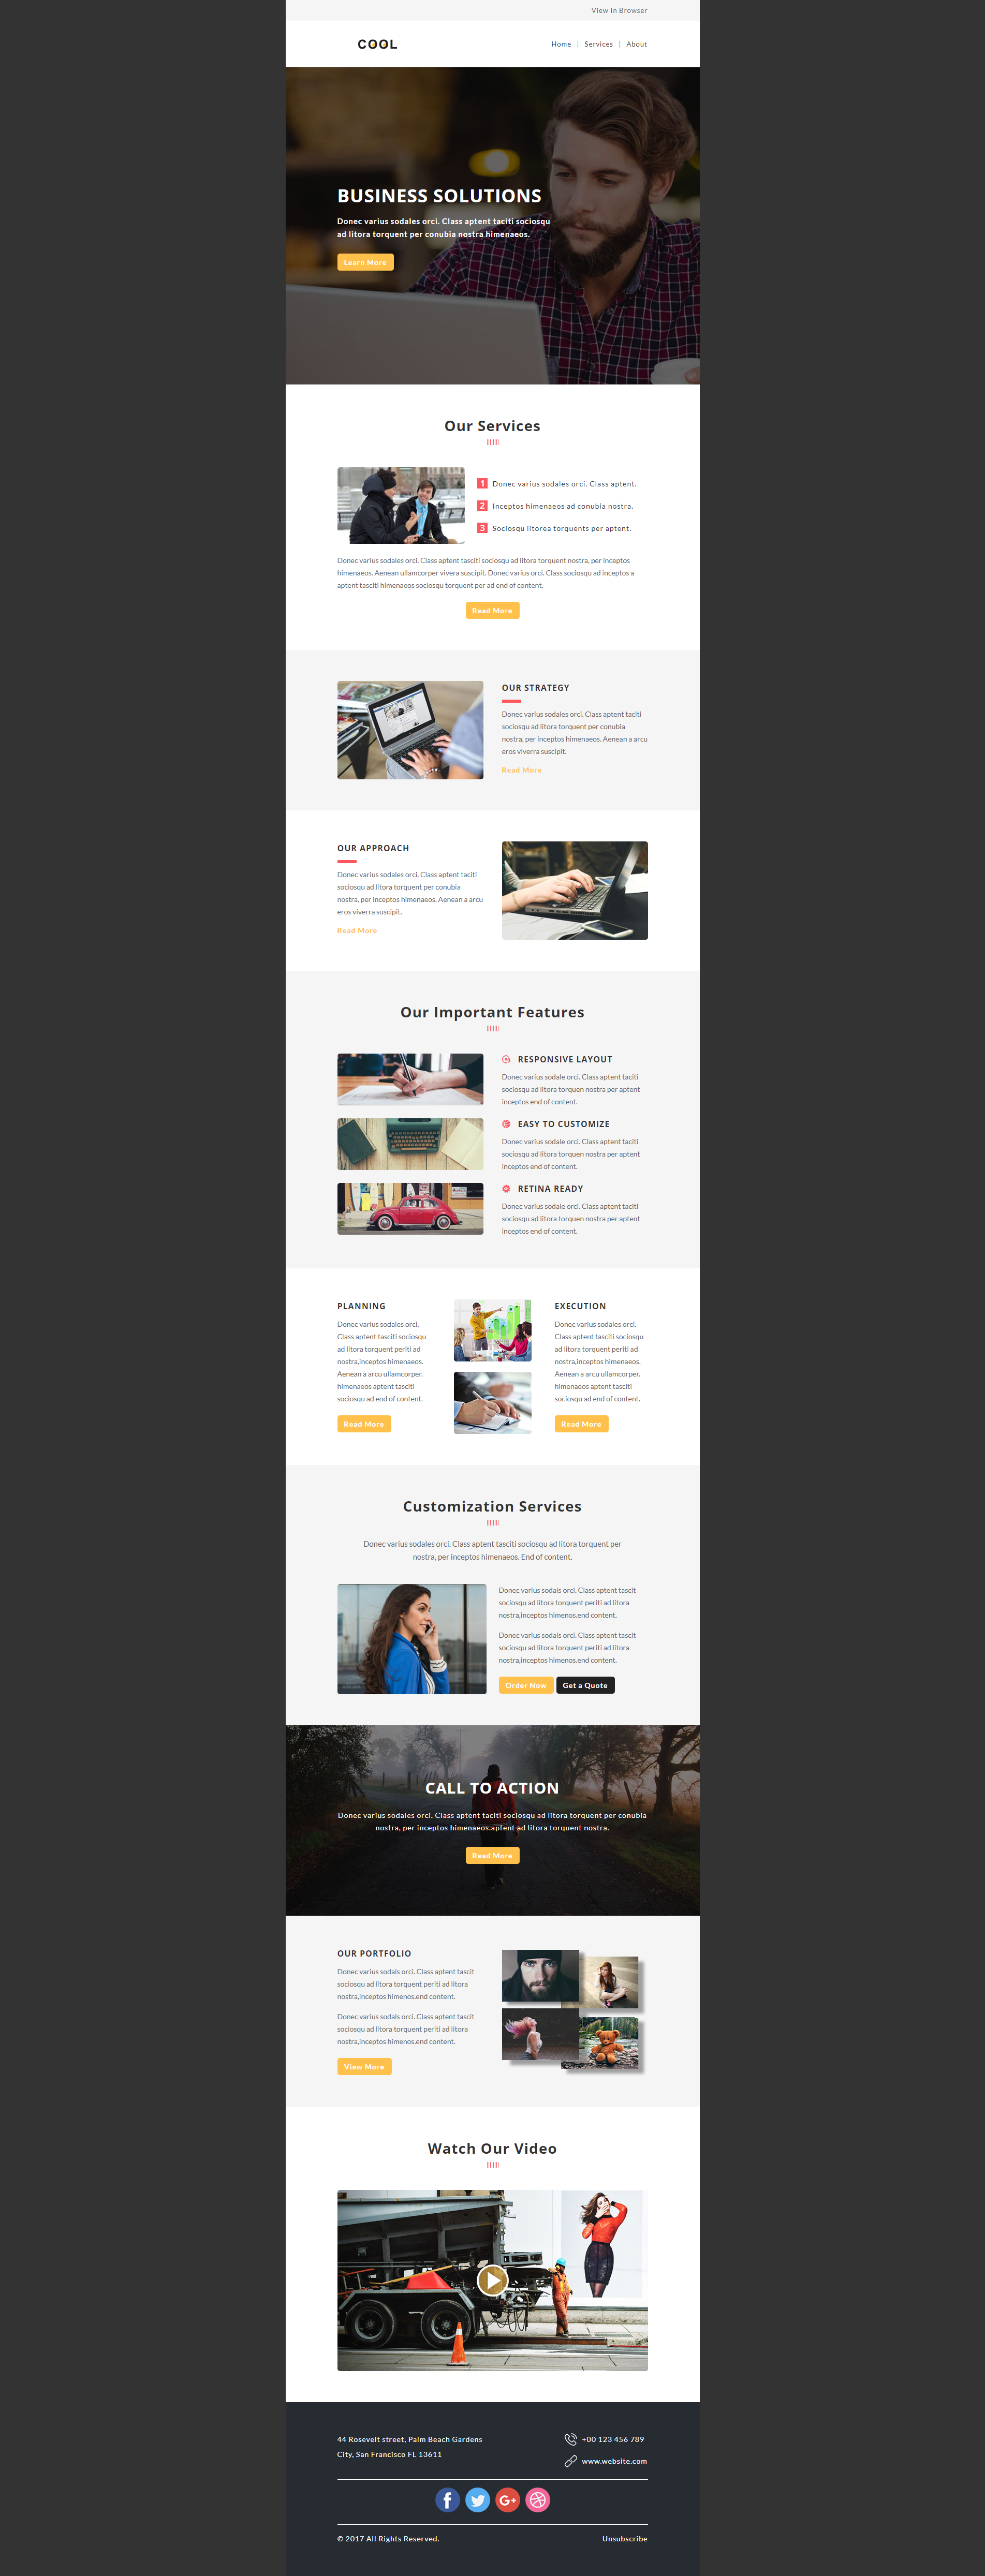 Design email template,html newsletter,html email campaign | Email ...